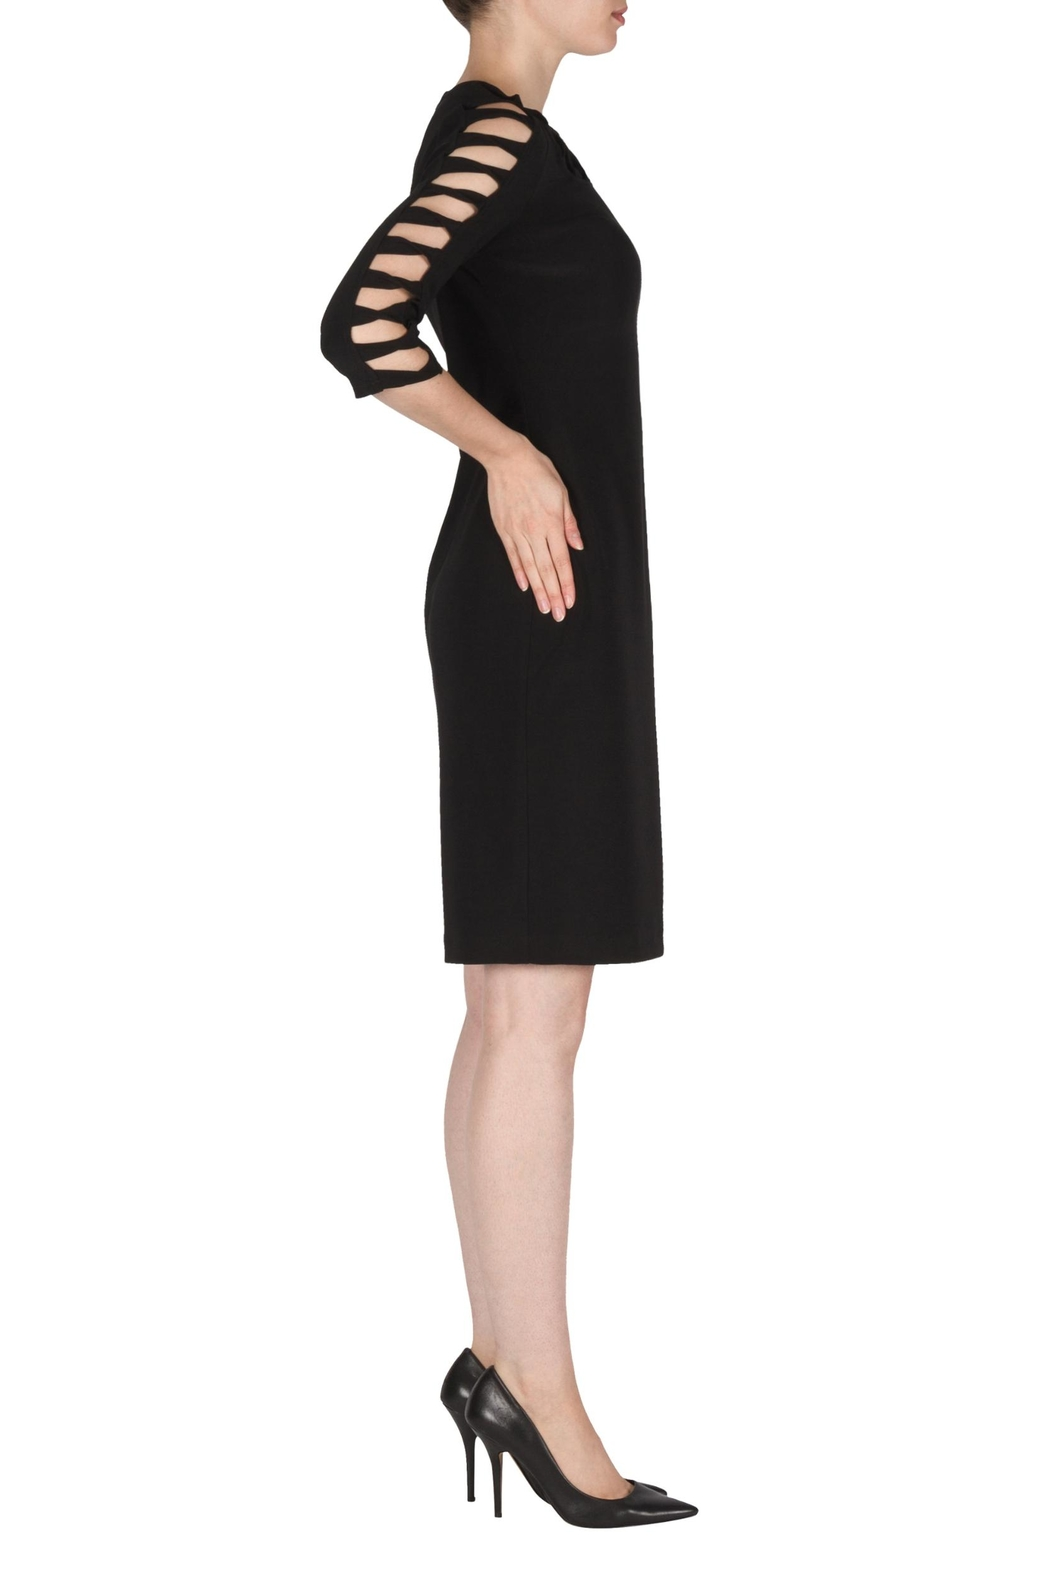 Joseph Ribkoff Black Cut-Outs Dress - Front Full Image